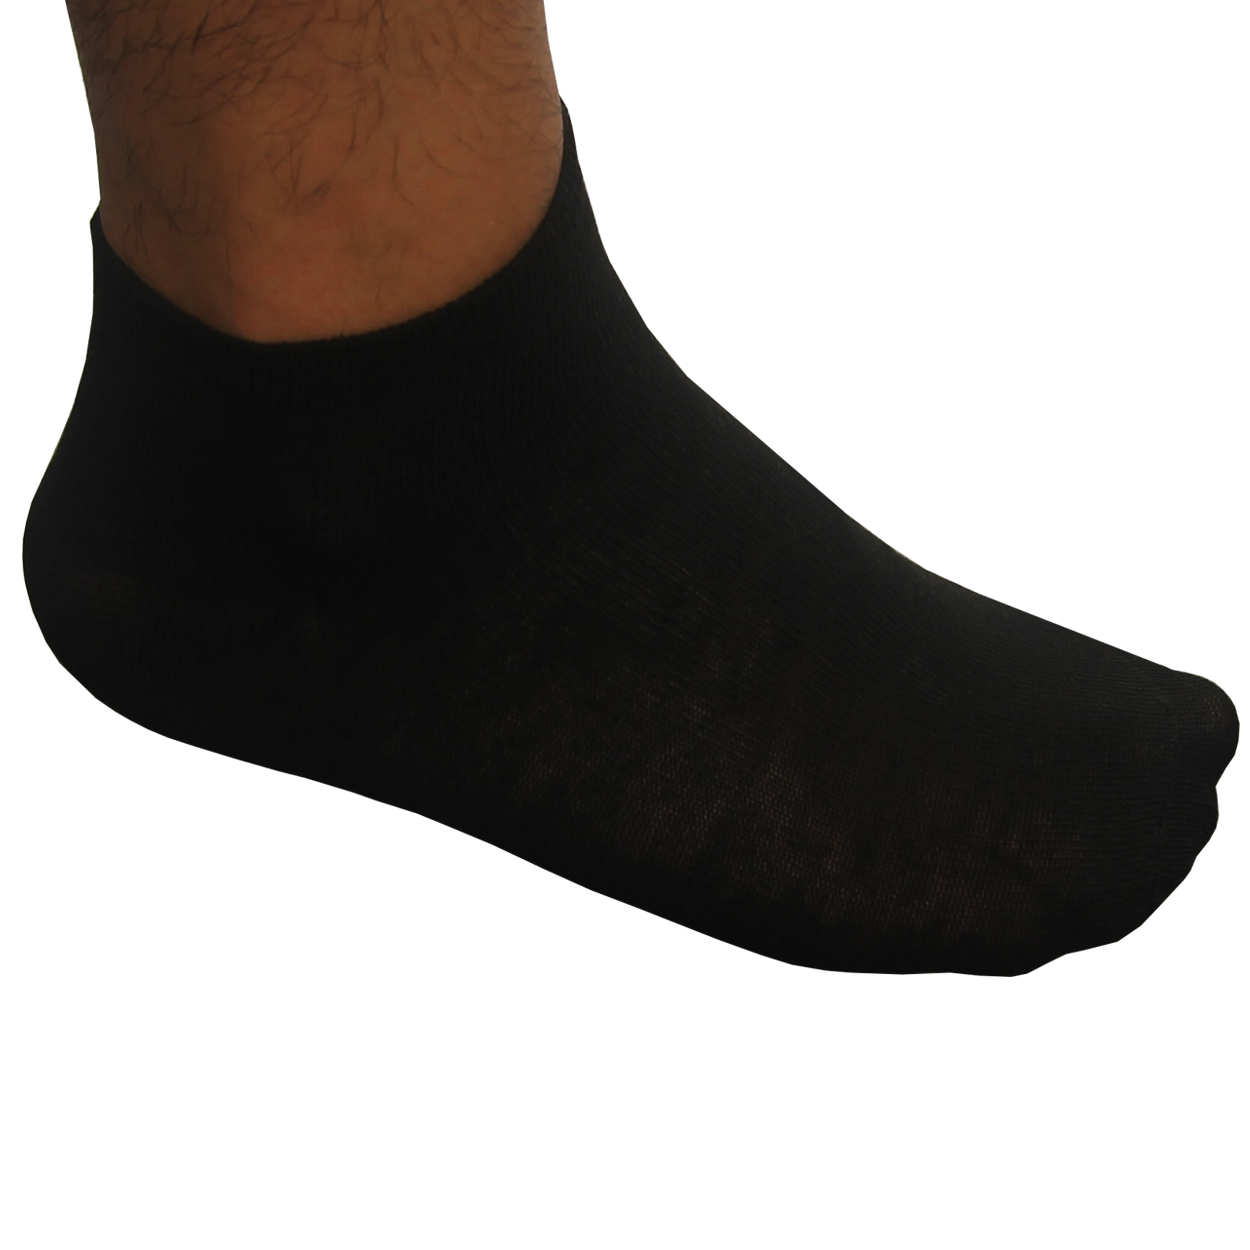 Hollywood Pro First Quality Low Cut Golf Socks, 6 Pair